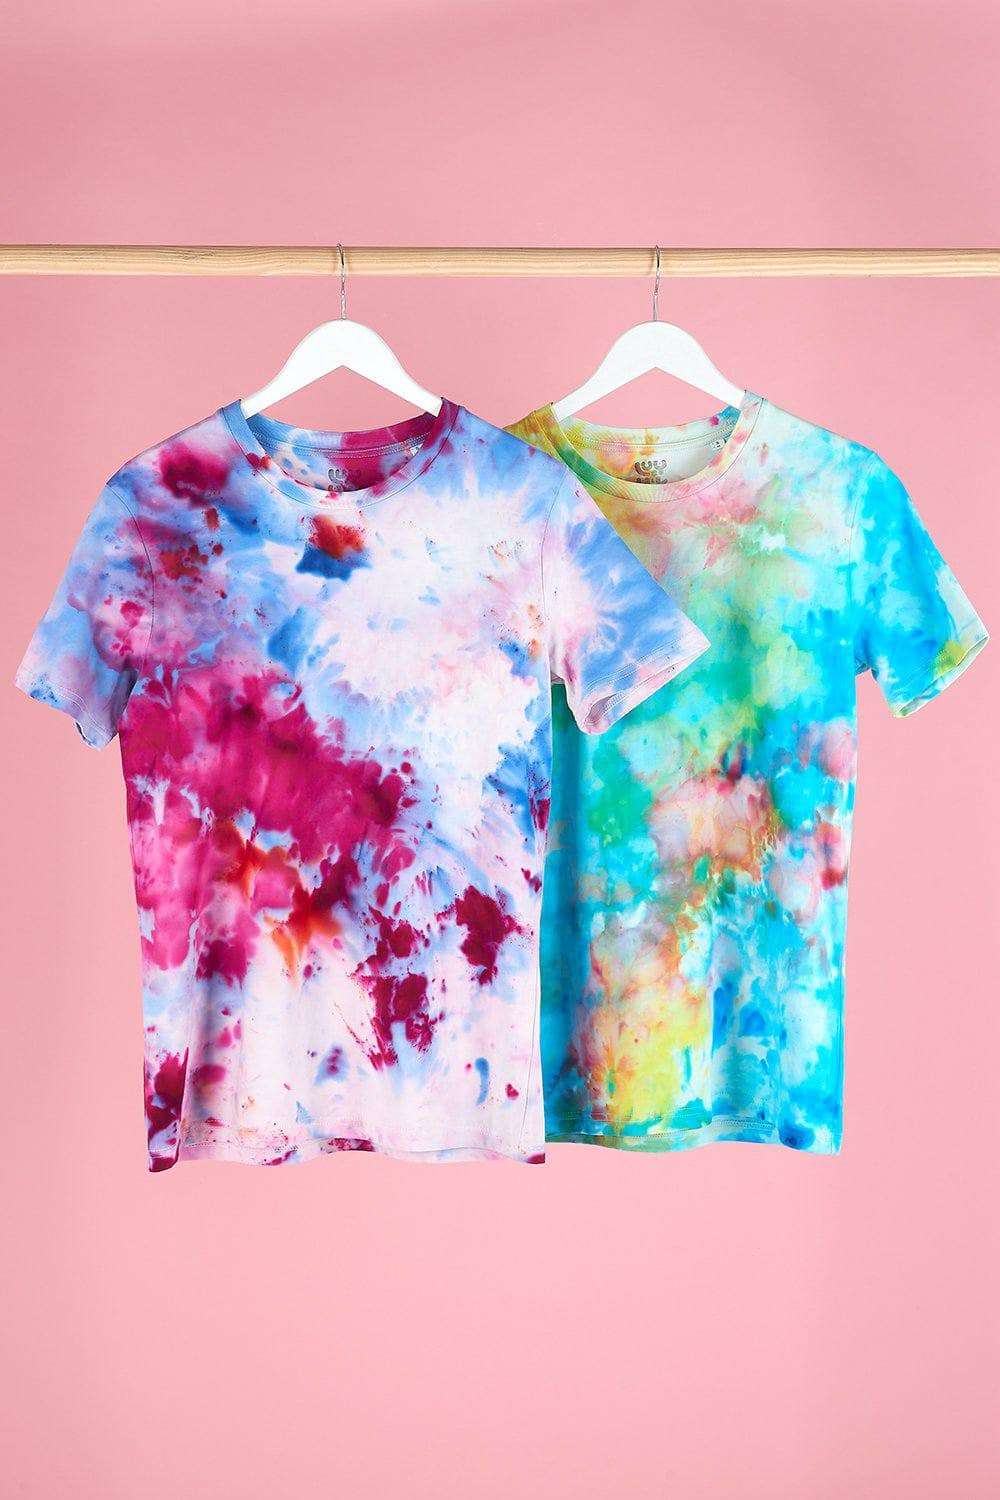 Lucy & Yak Tops Stanley Ice Dye Tee in Pink, Purple & Blue - We Are Hairy People x Lucy & Yak